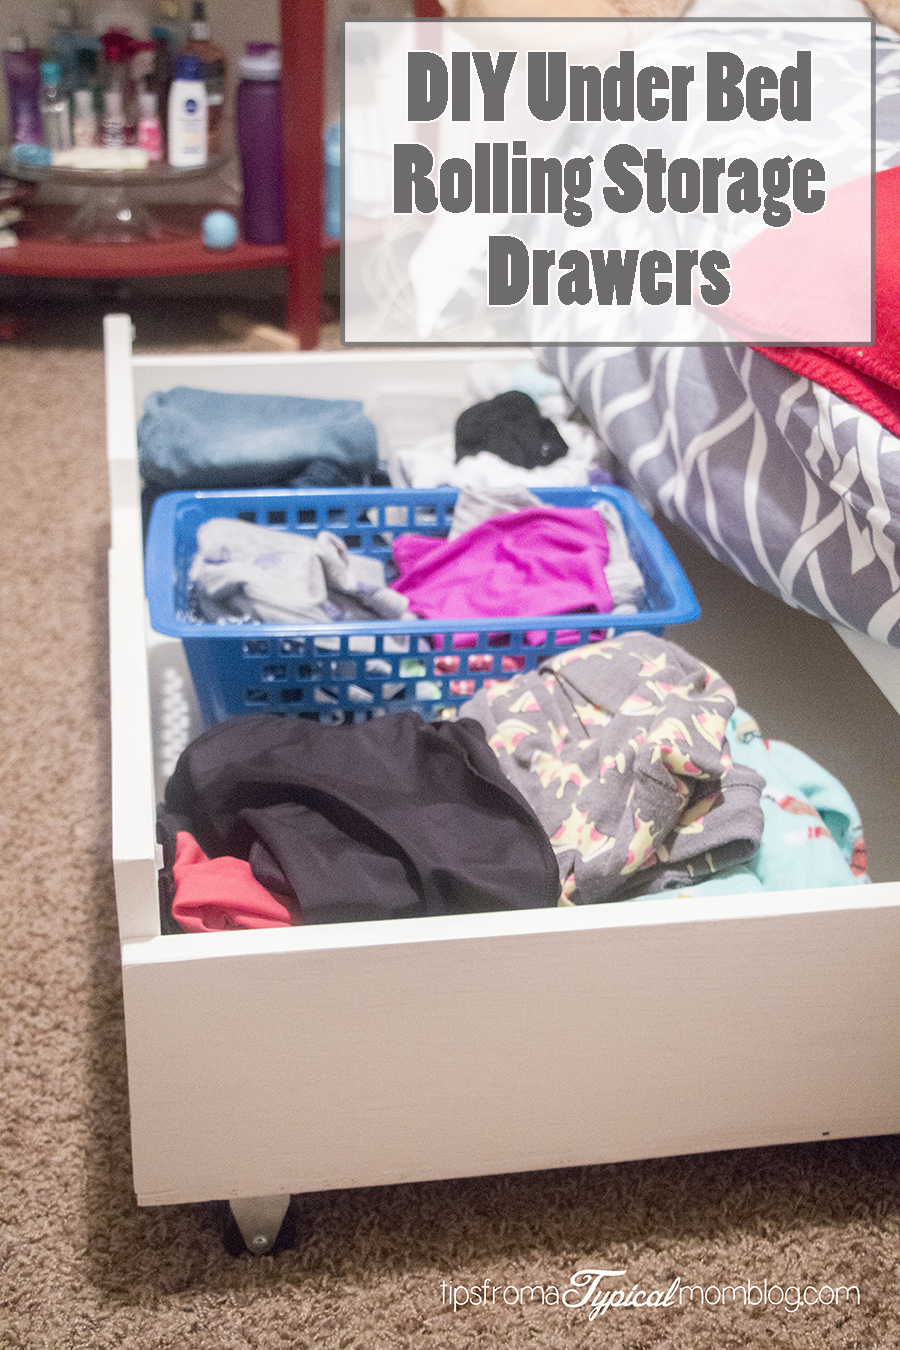 DIY Under Bed Storage Drawers